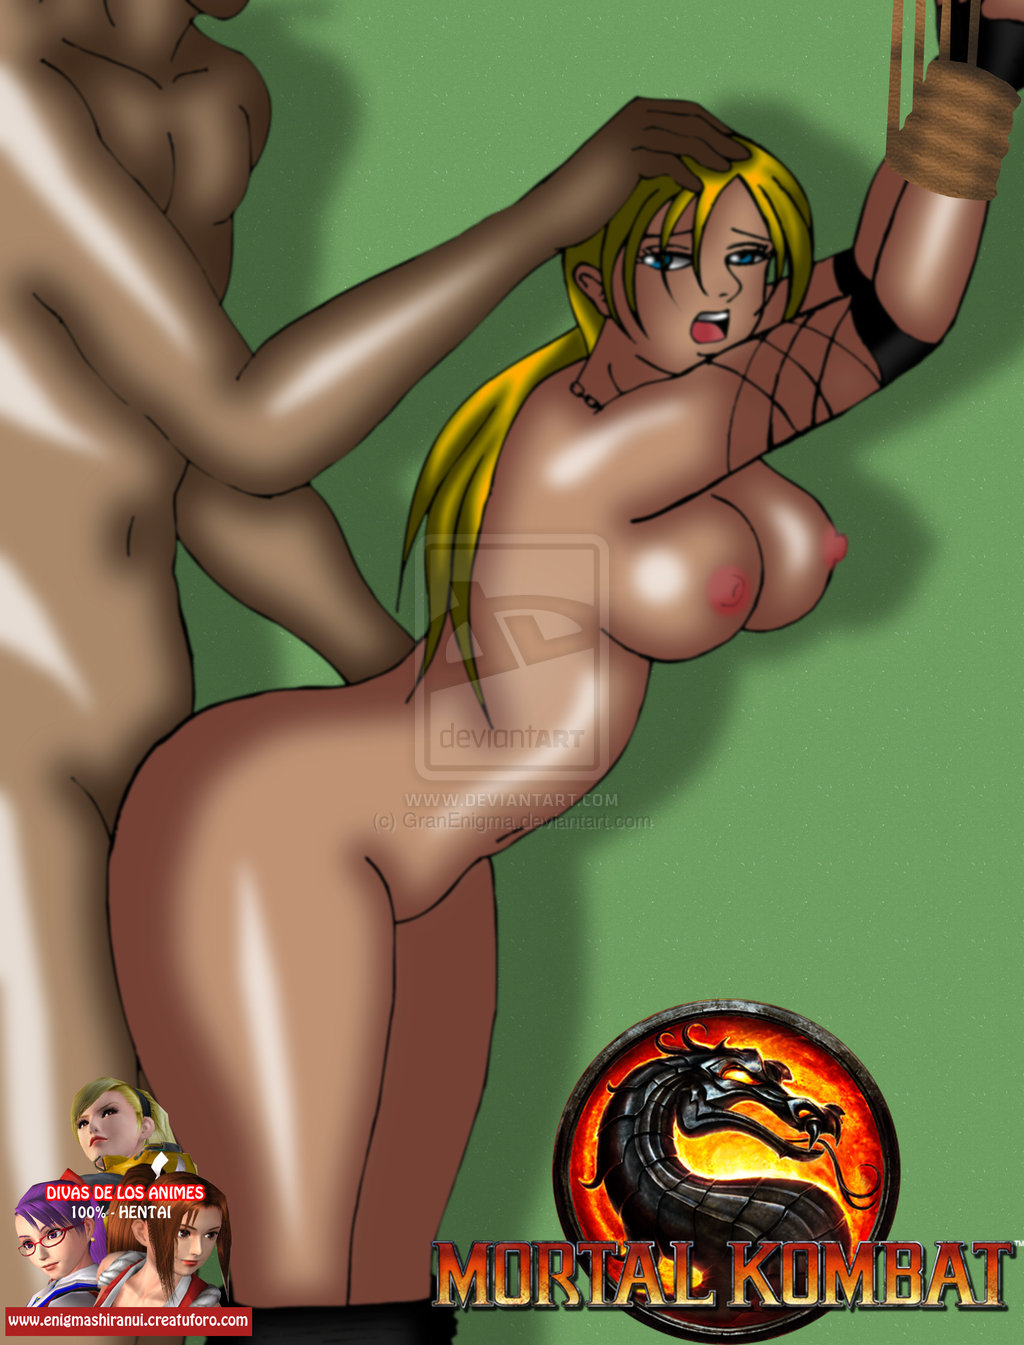 Sonya blade of mortal kombat porn sex gallery